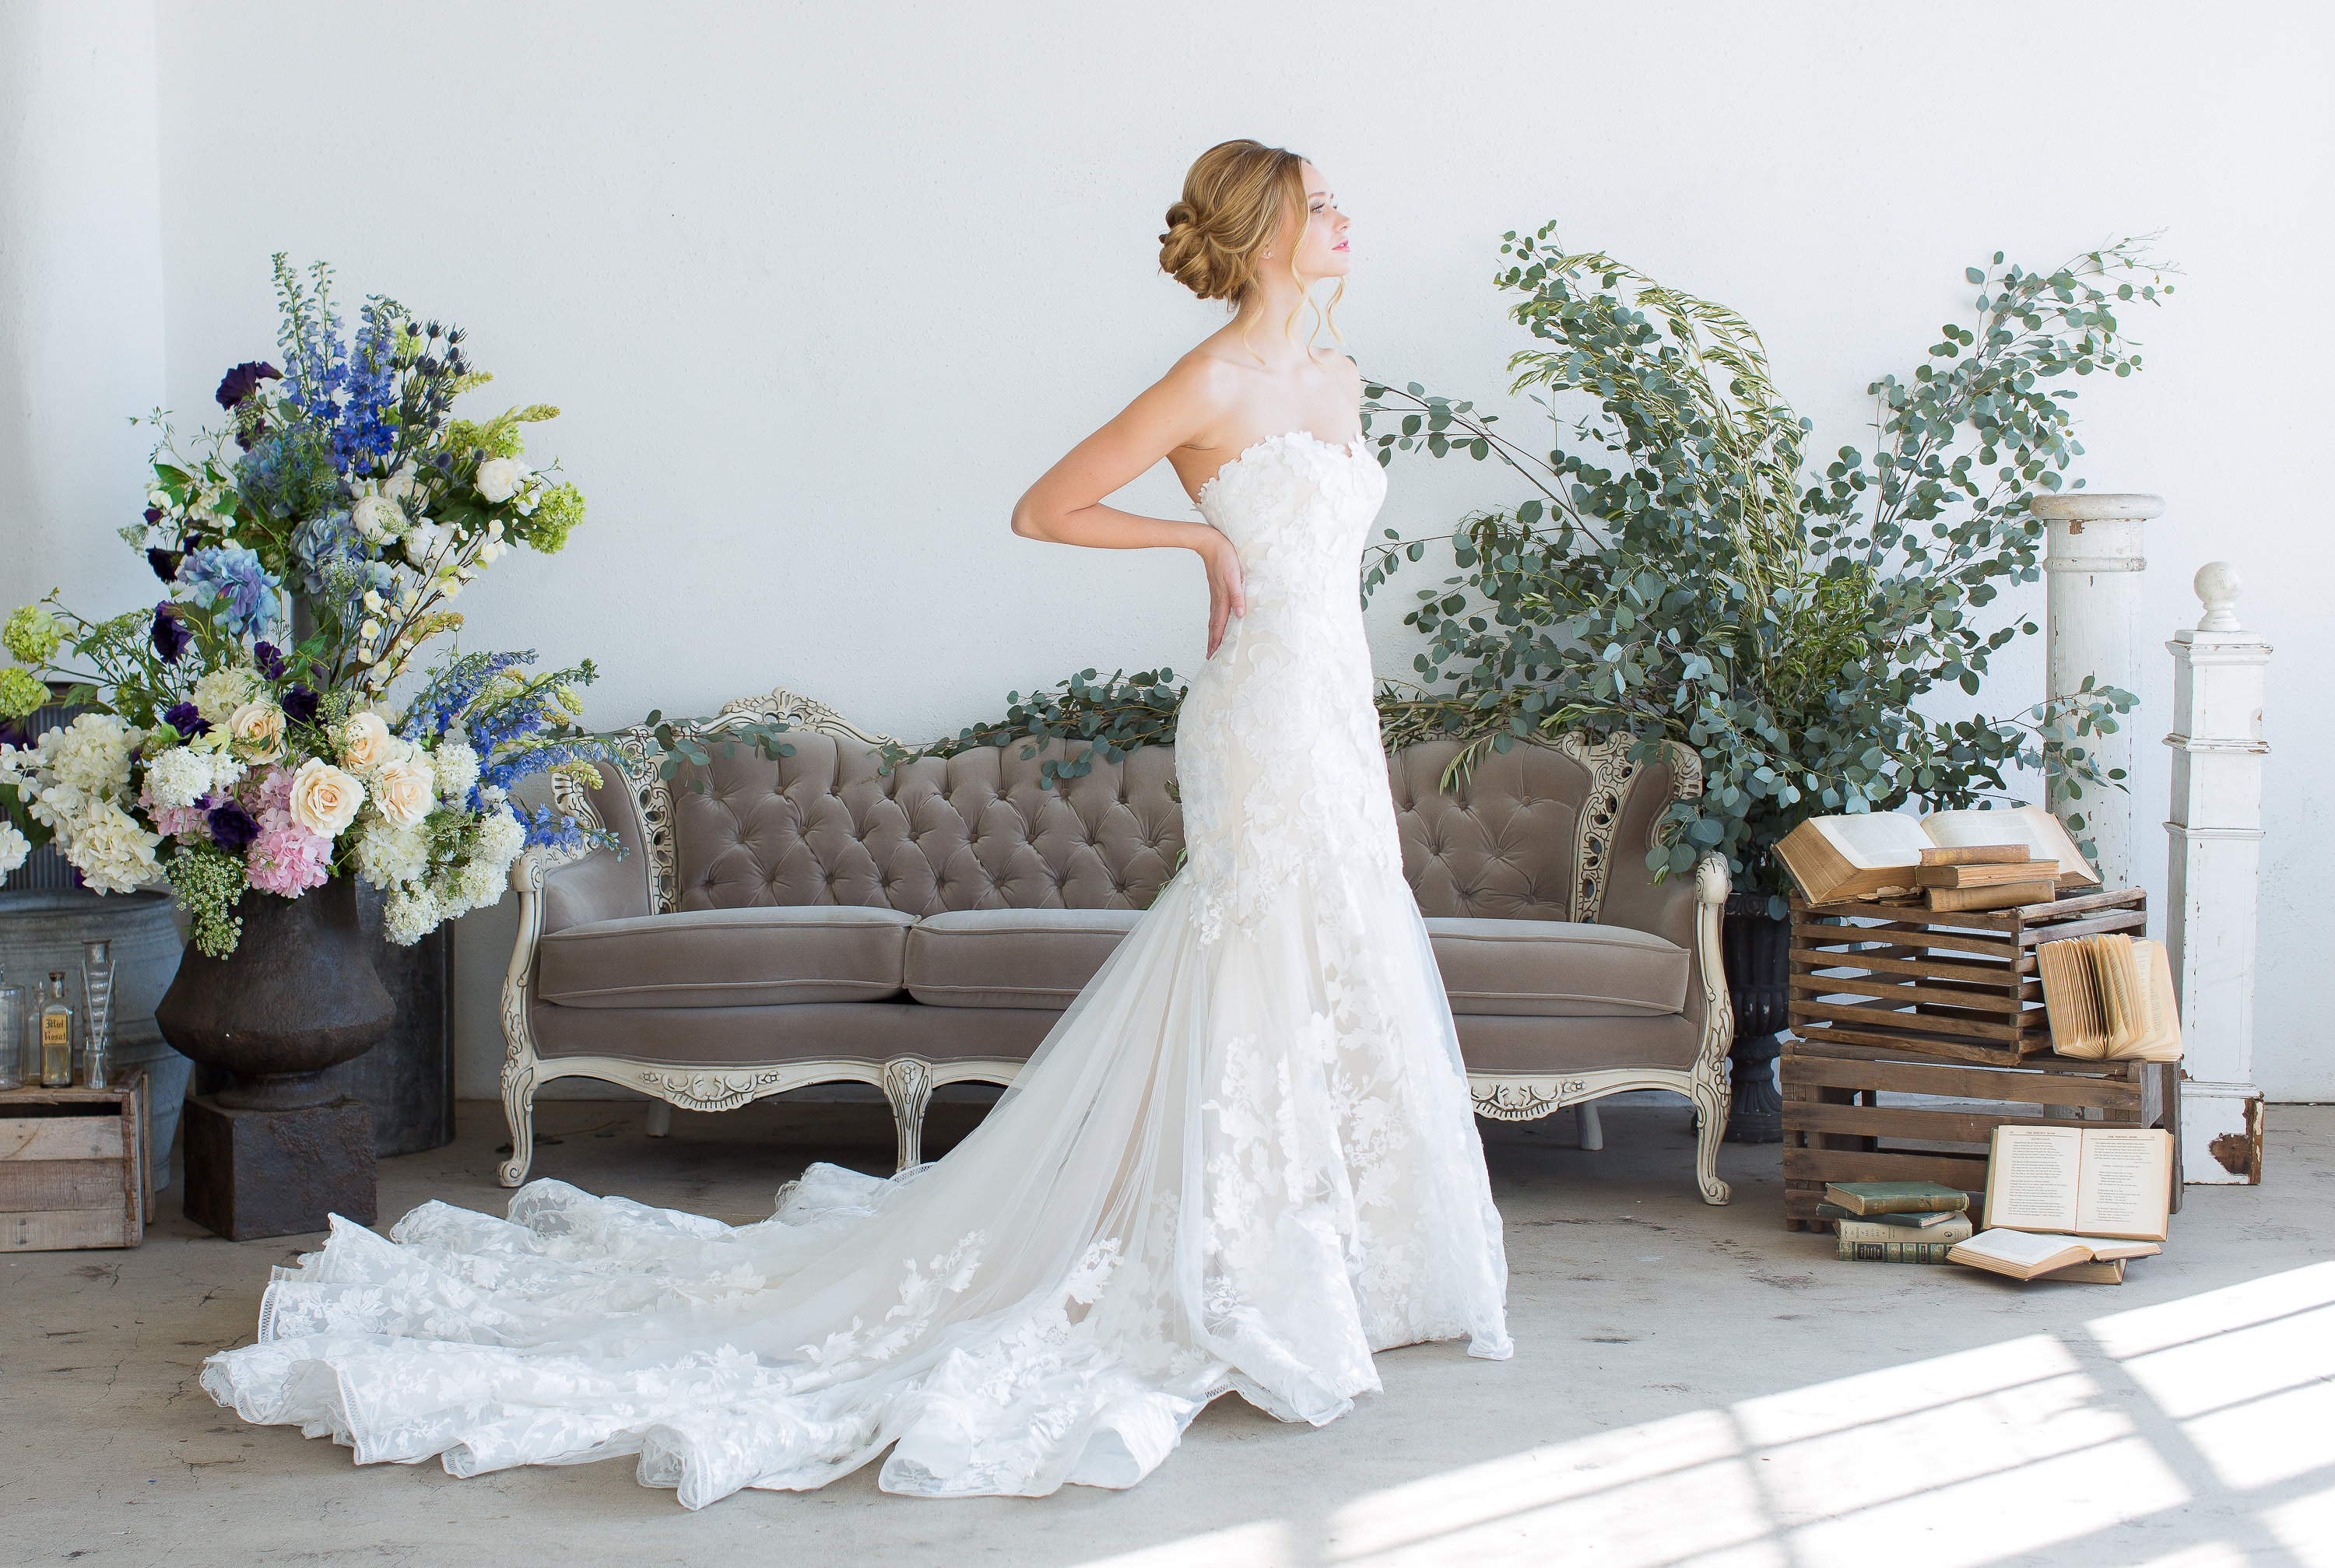 New Wedding Dresses from JINZA Couture Bridal 2017 - Inside Weddings